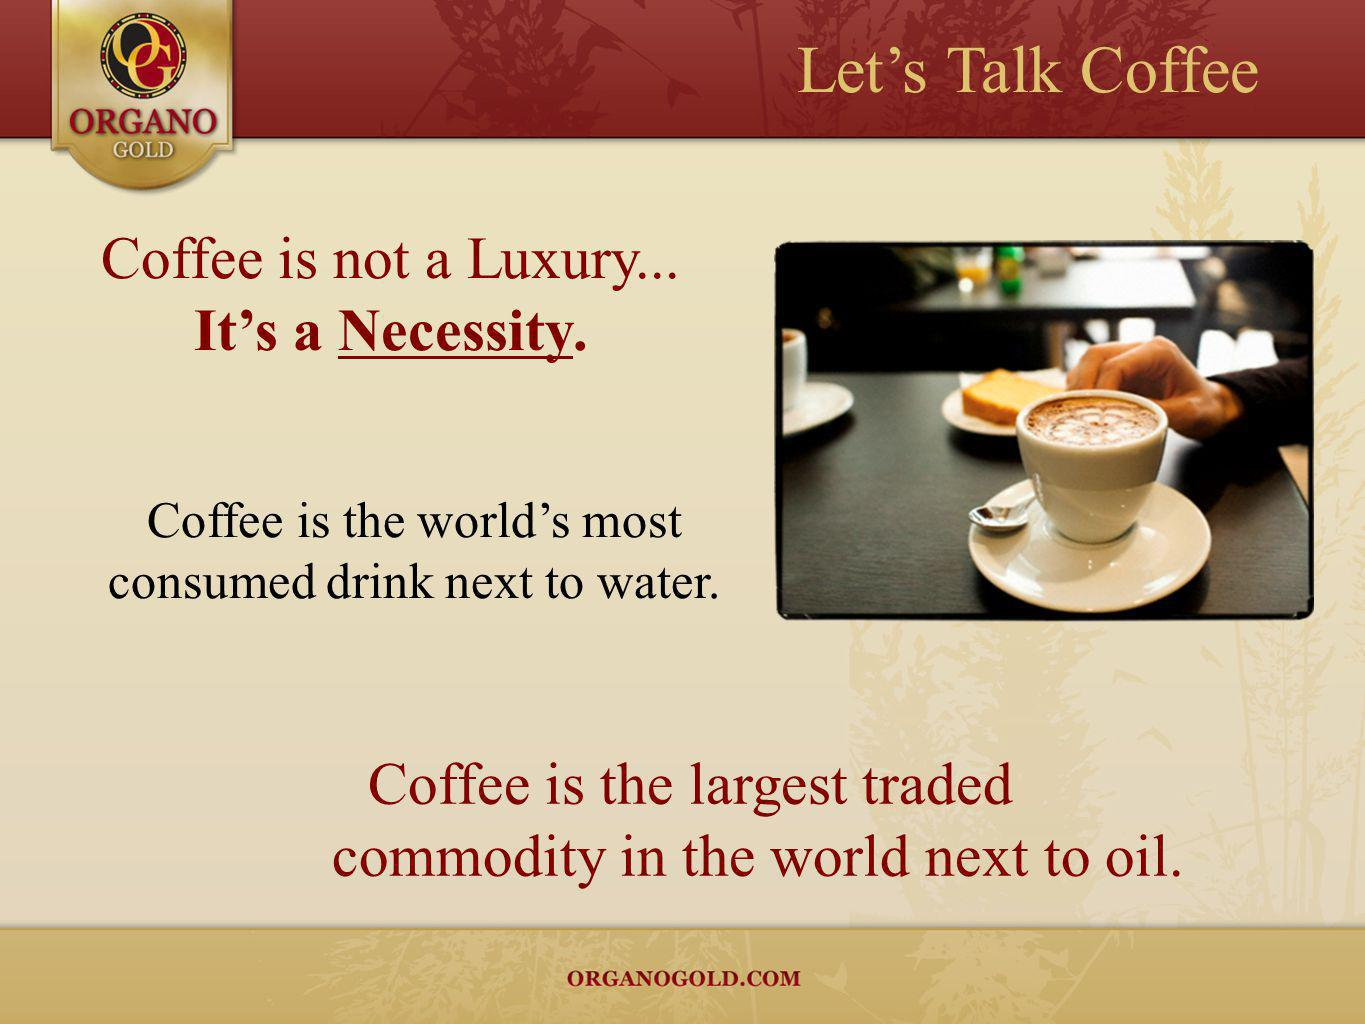 Let's Talk Coffee Coffee is not a Luxury... It's a Necessity.